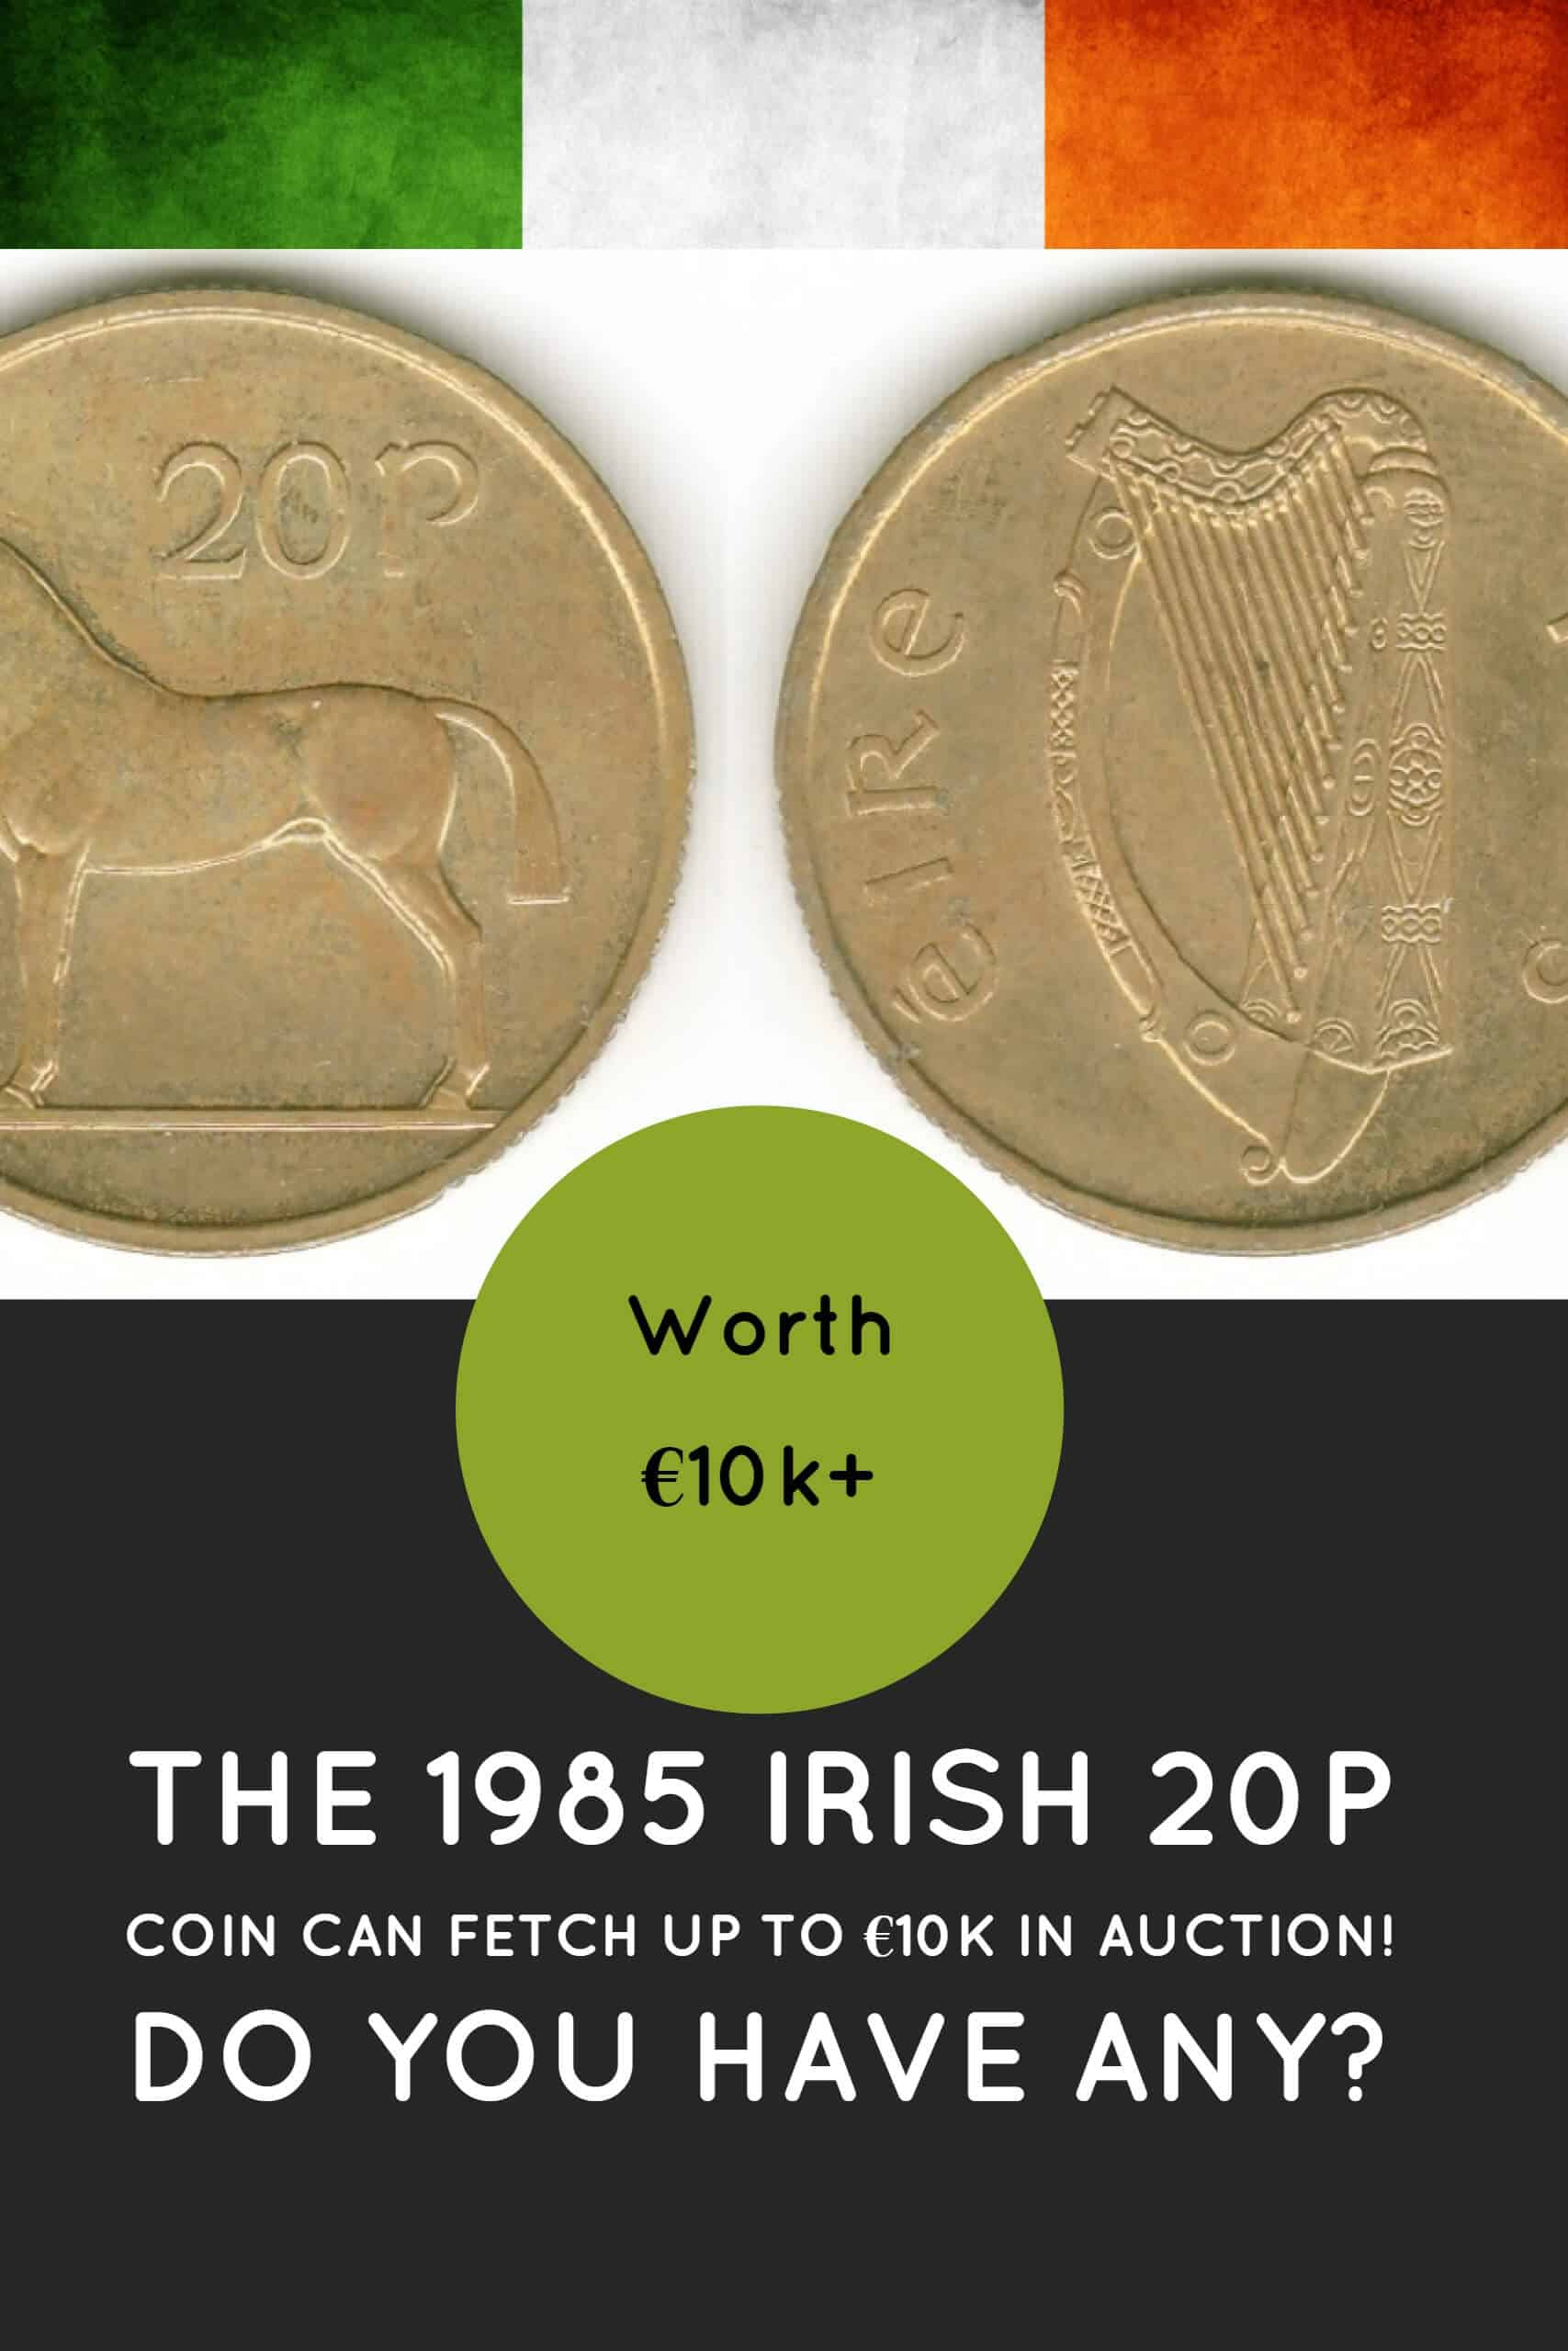 20p old Irish coins could fetch up to 10k at auction